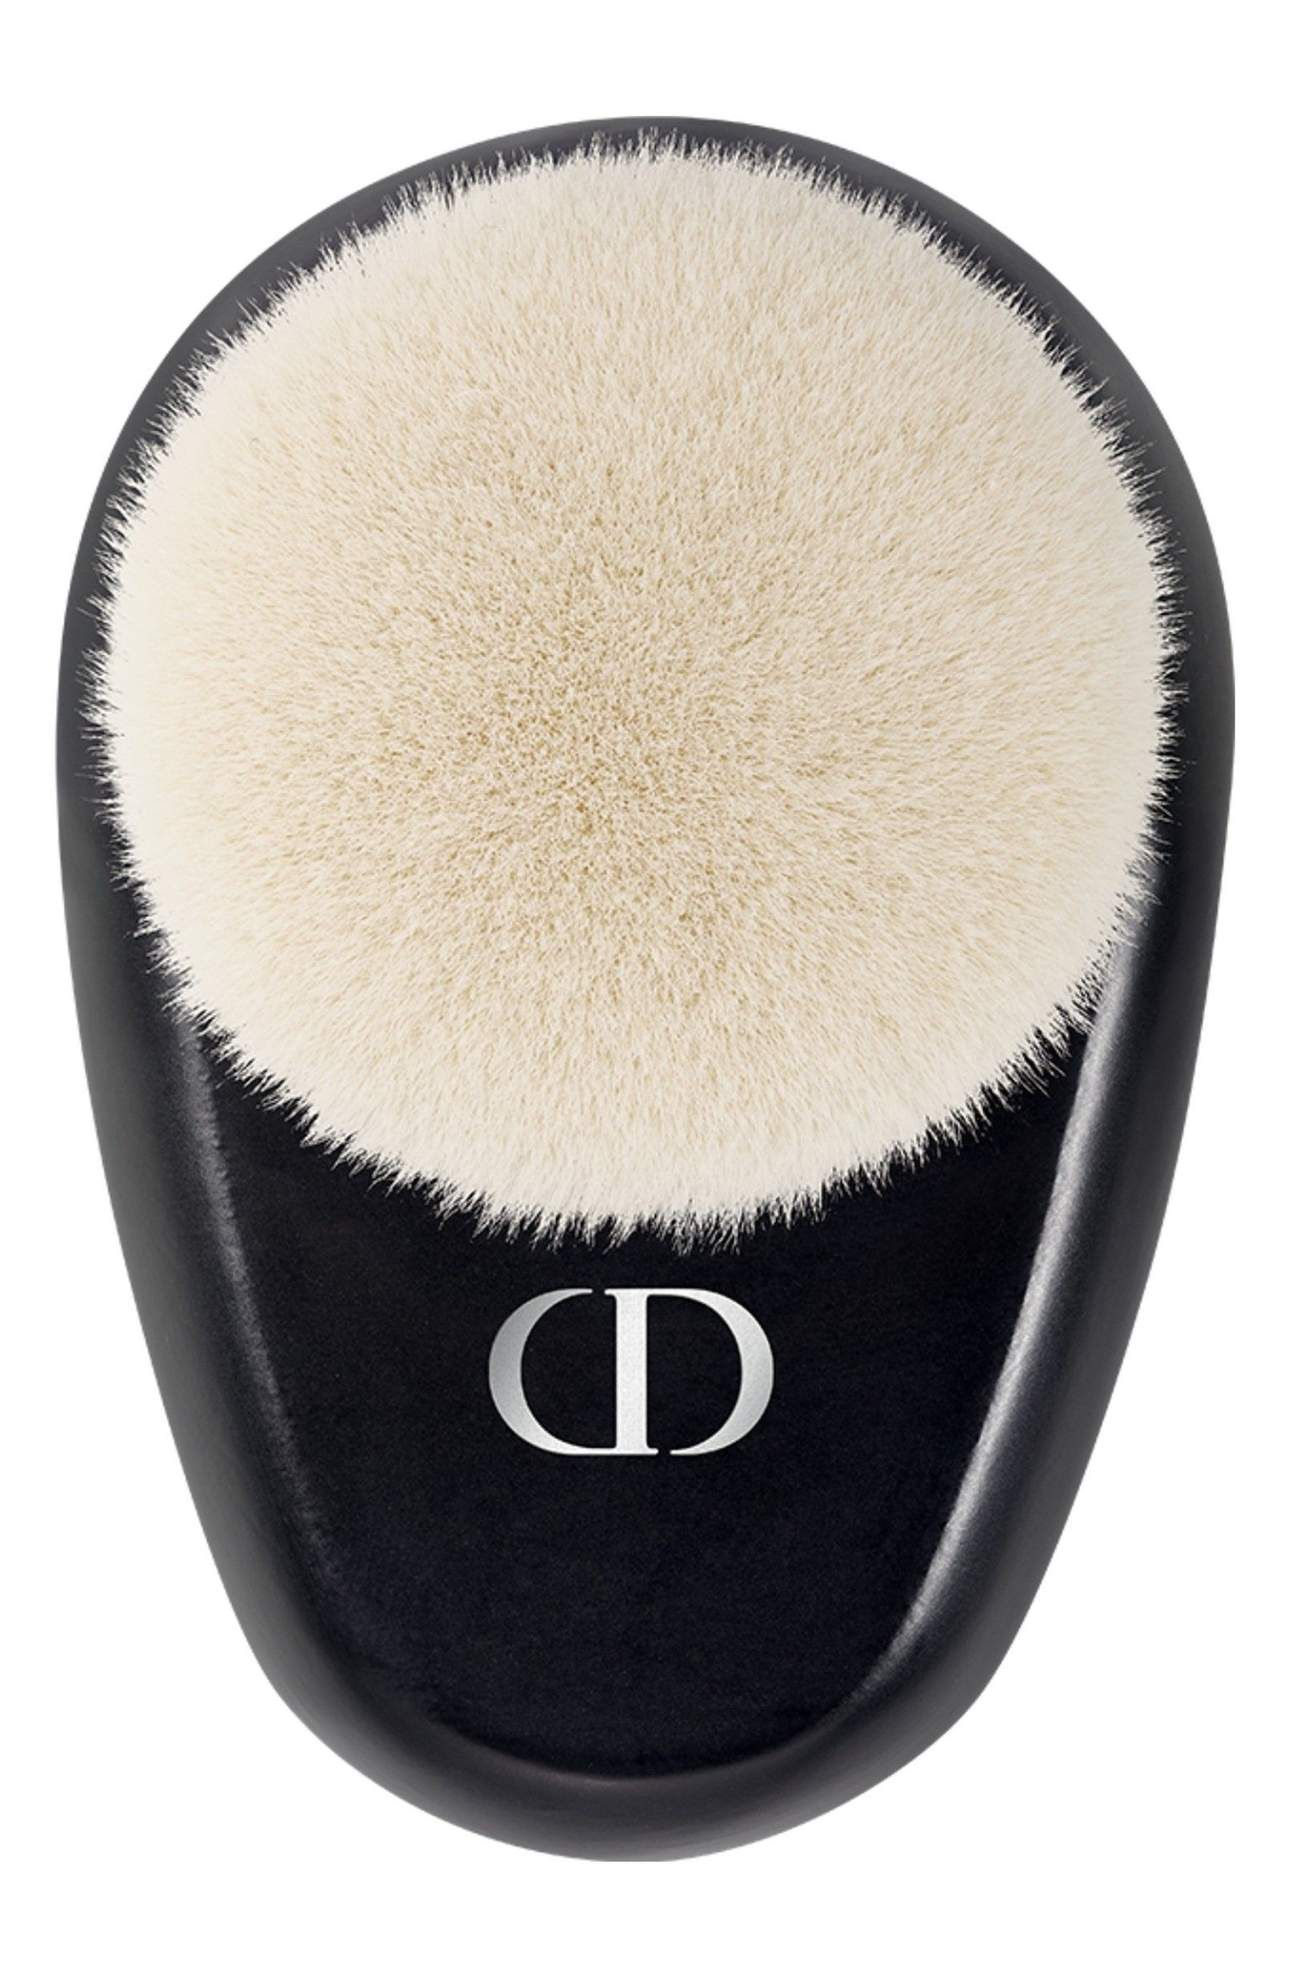 Product Image 1 Buffing brush, Dior makeup, Dior